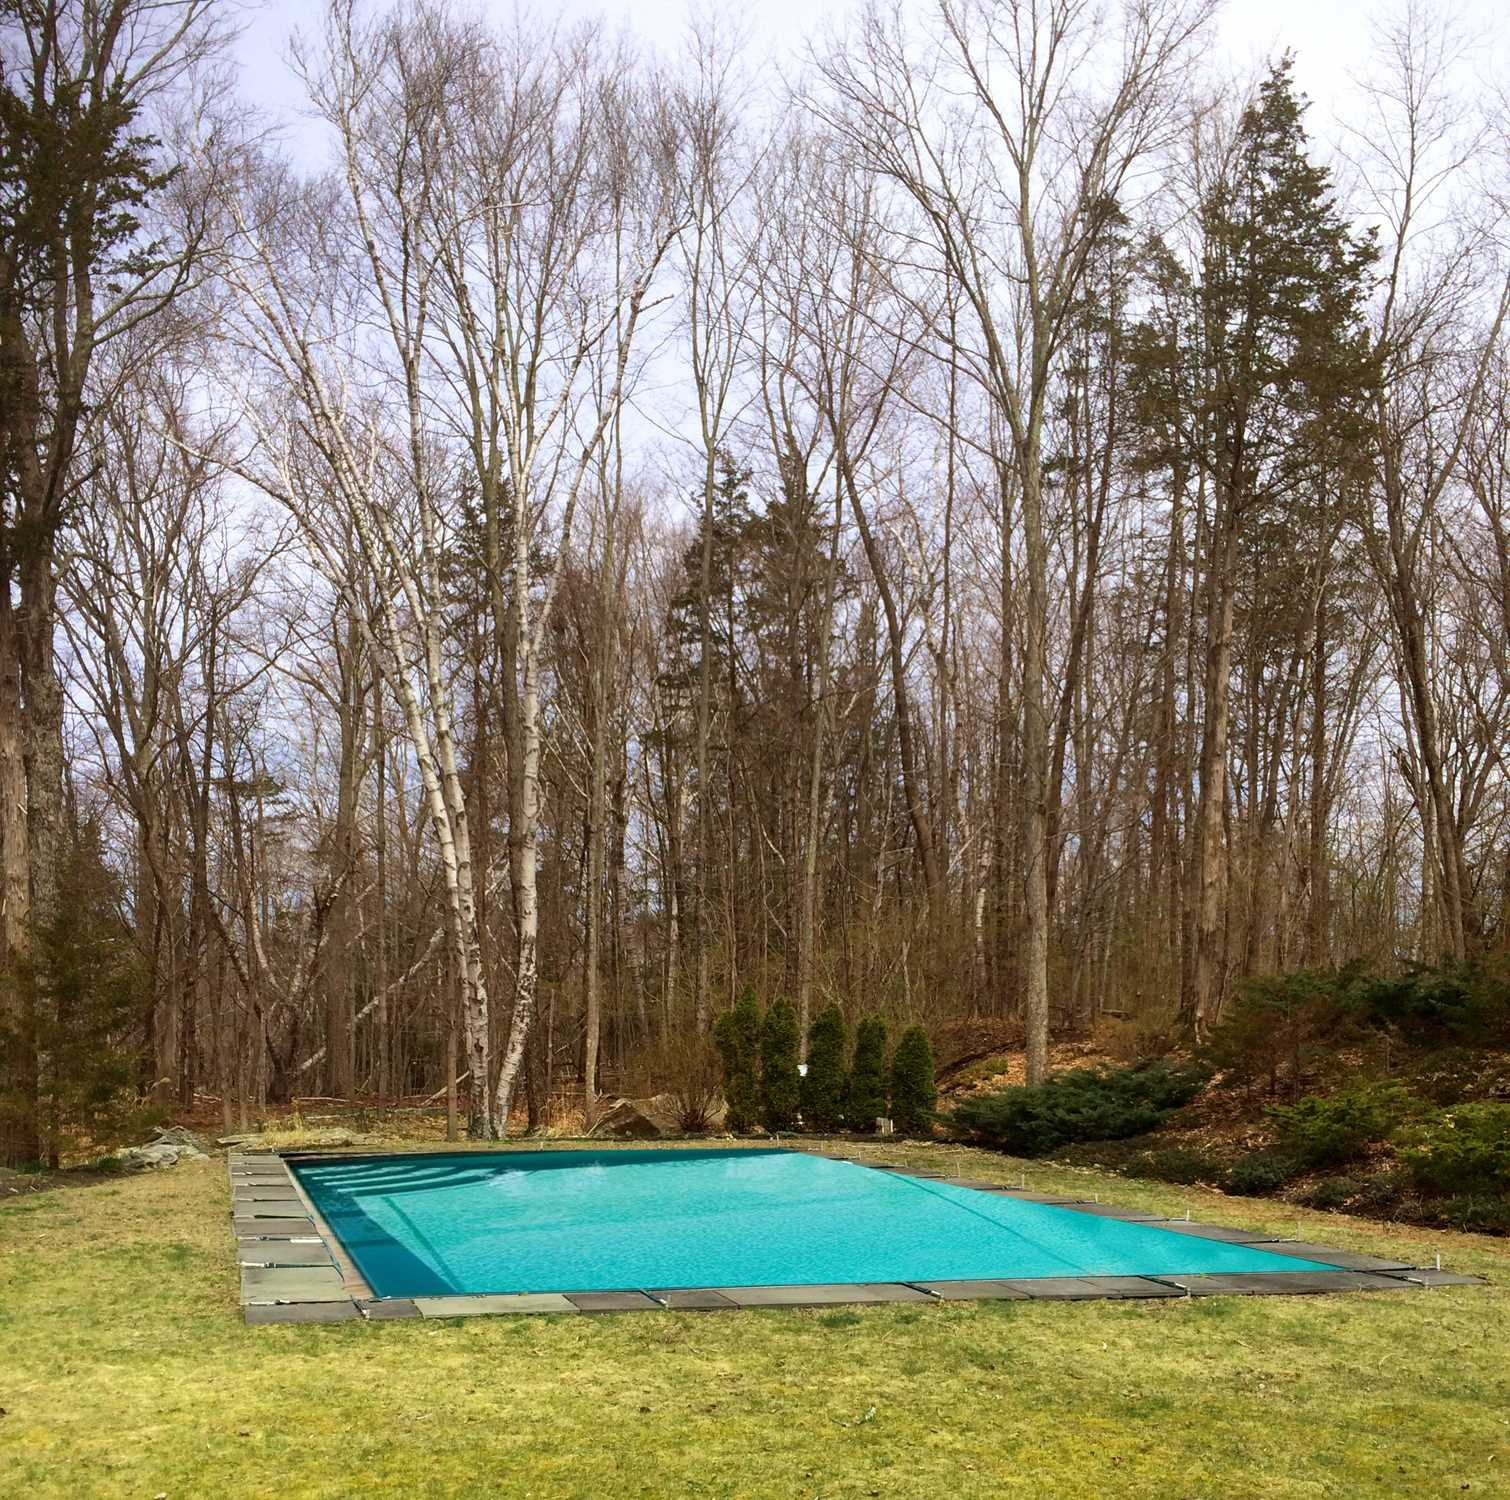 Additional photo for property listing at 15 TROUTBECK CRESCENT 15 TROUTBECK CRESCENT Amenia, New York 12546 United States